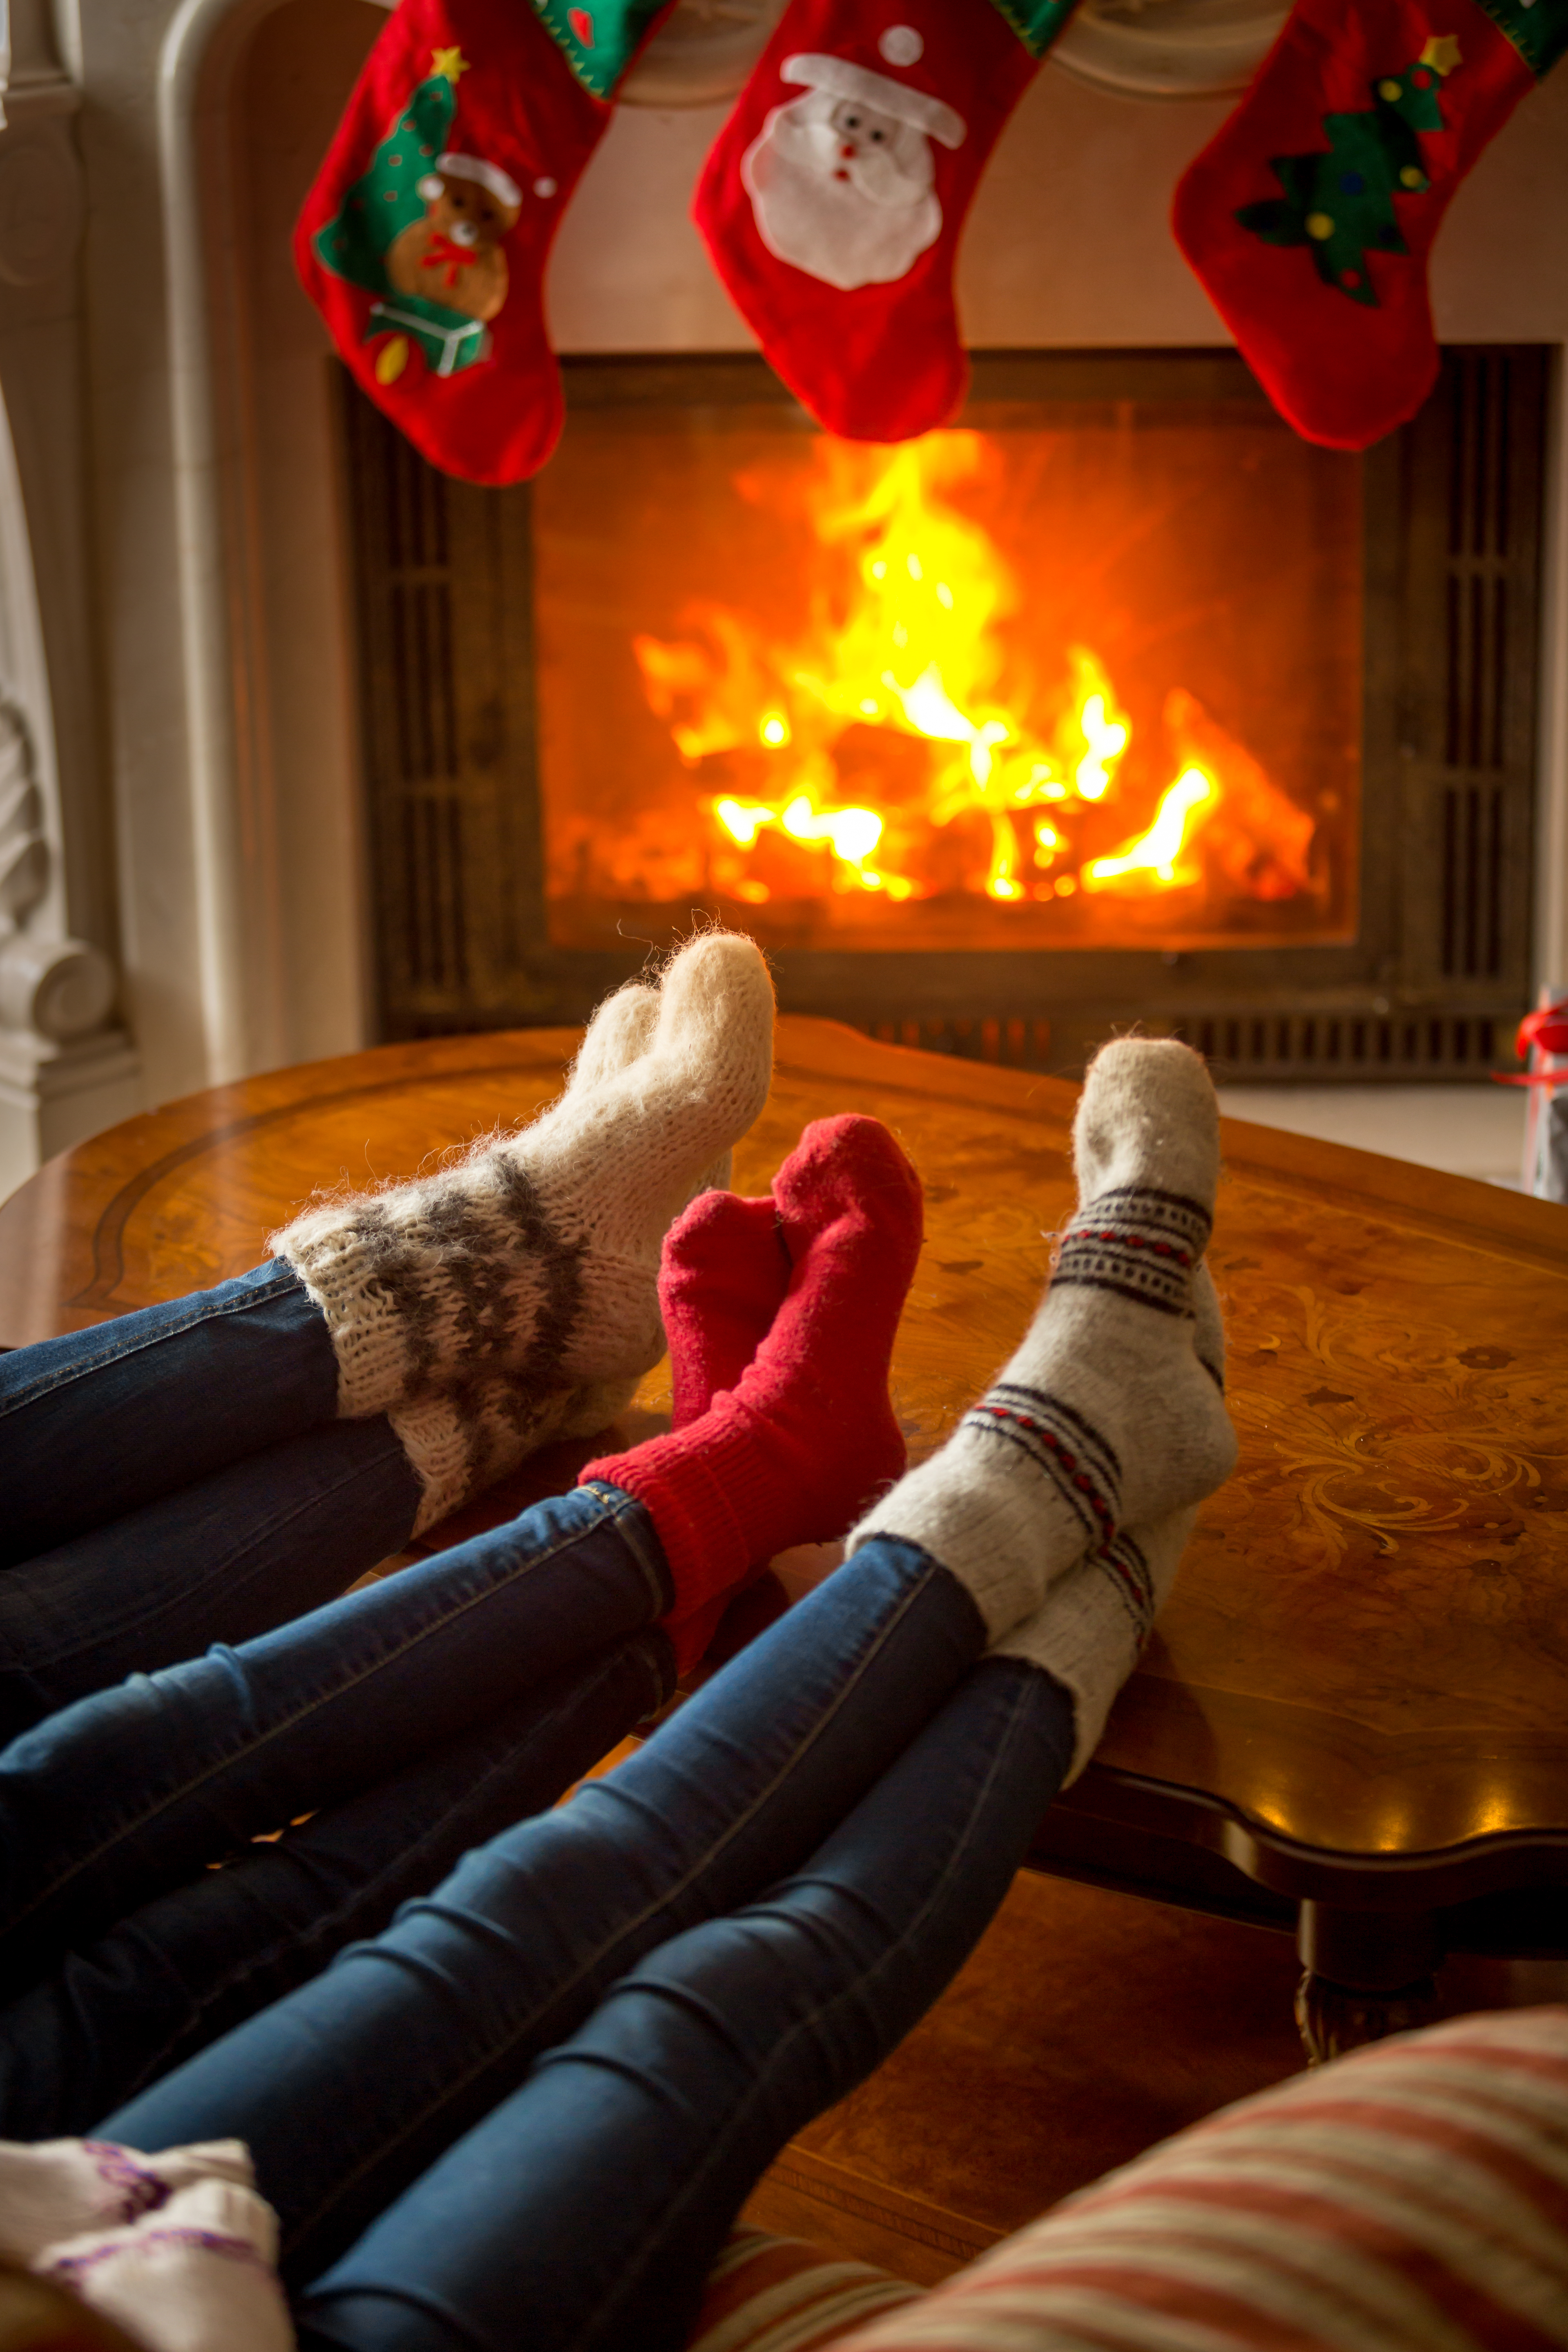 Feet in woolen socks warming at burning fireplace